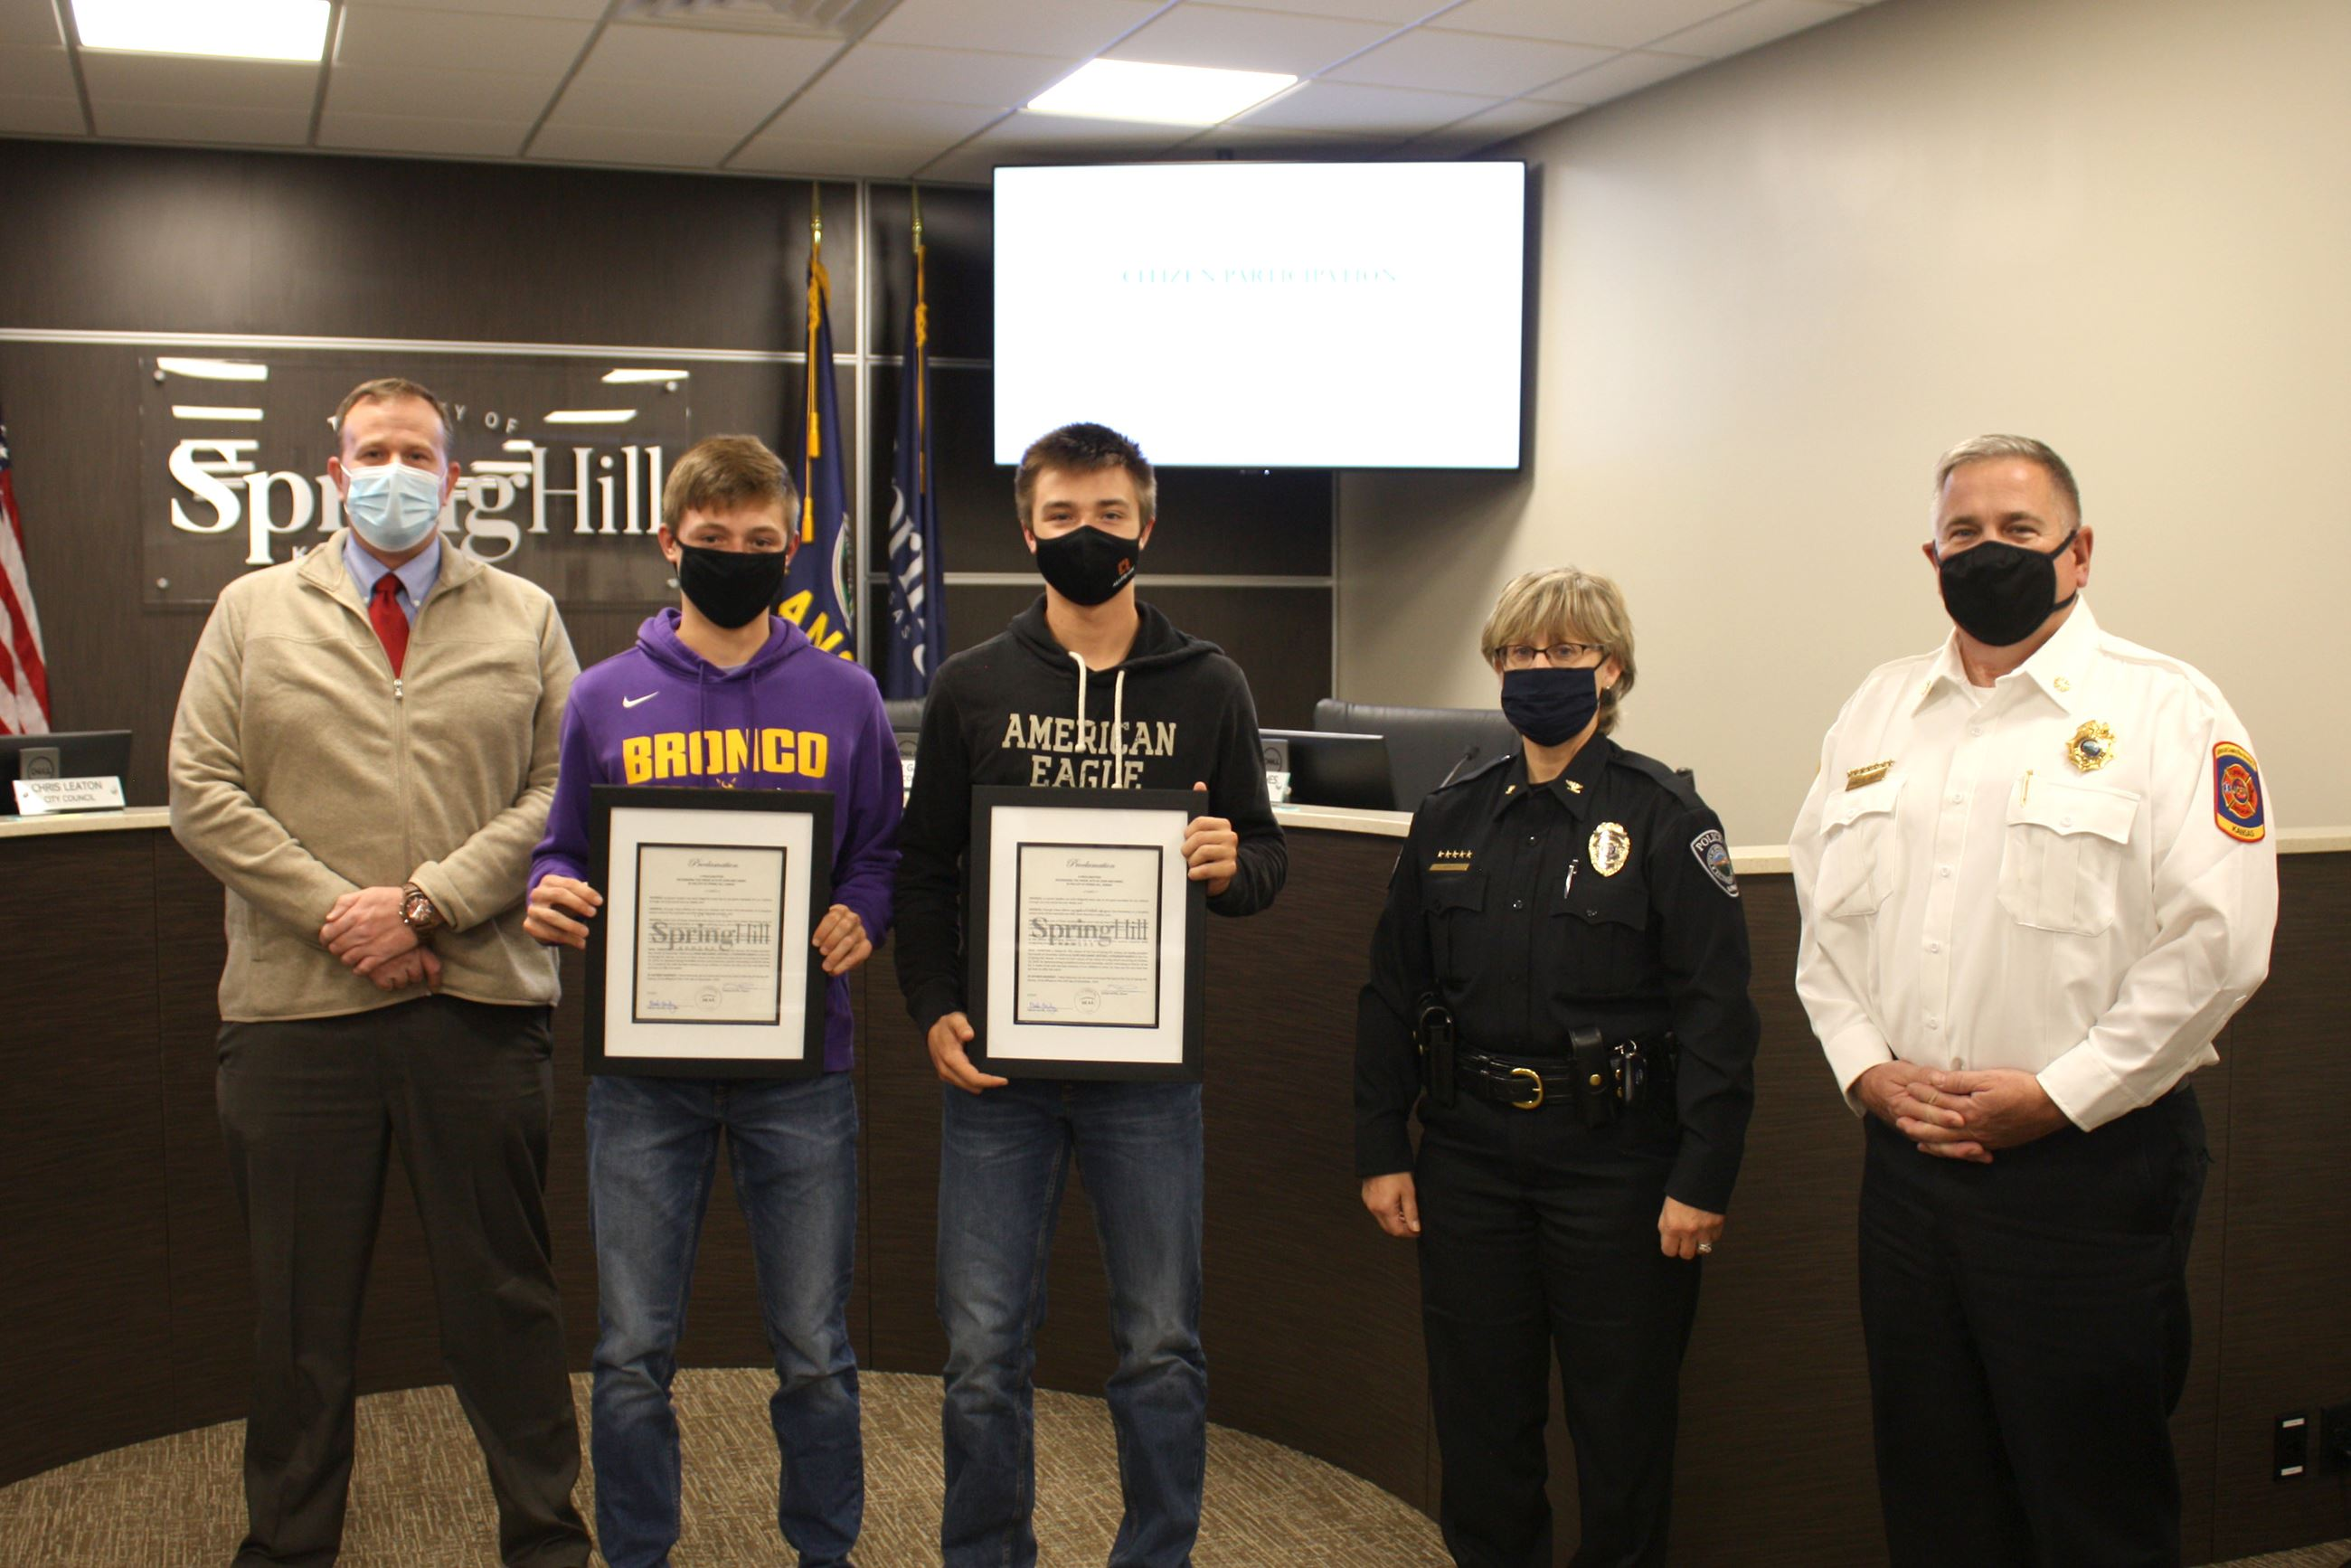 John and Daniel Mitchell receive their proclamations from Mayor Steven Ellis, Spring Hill Police Chi